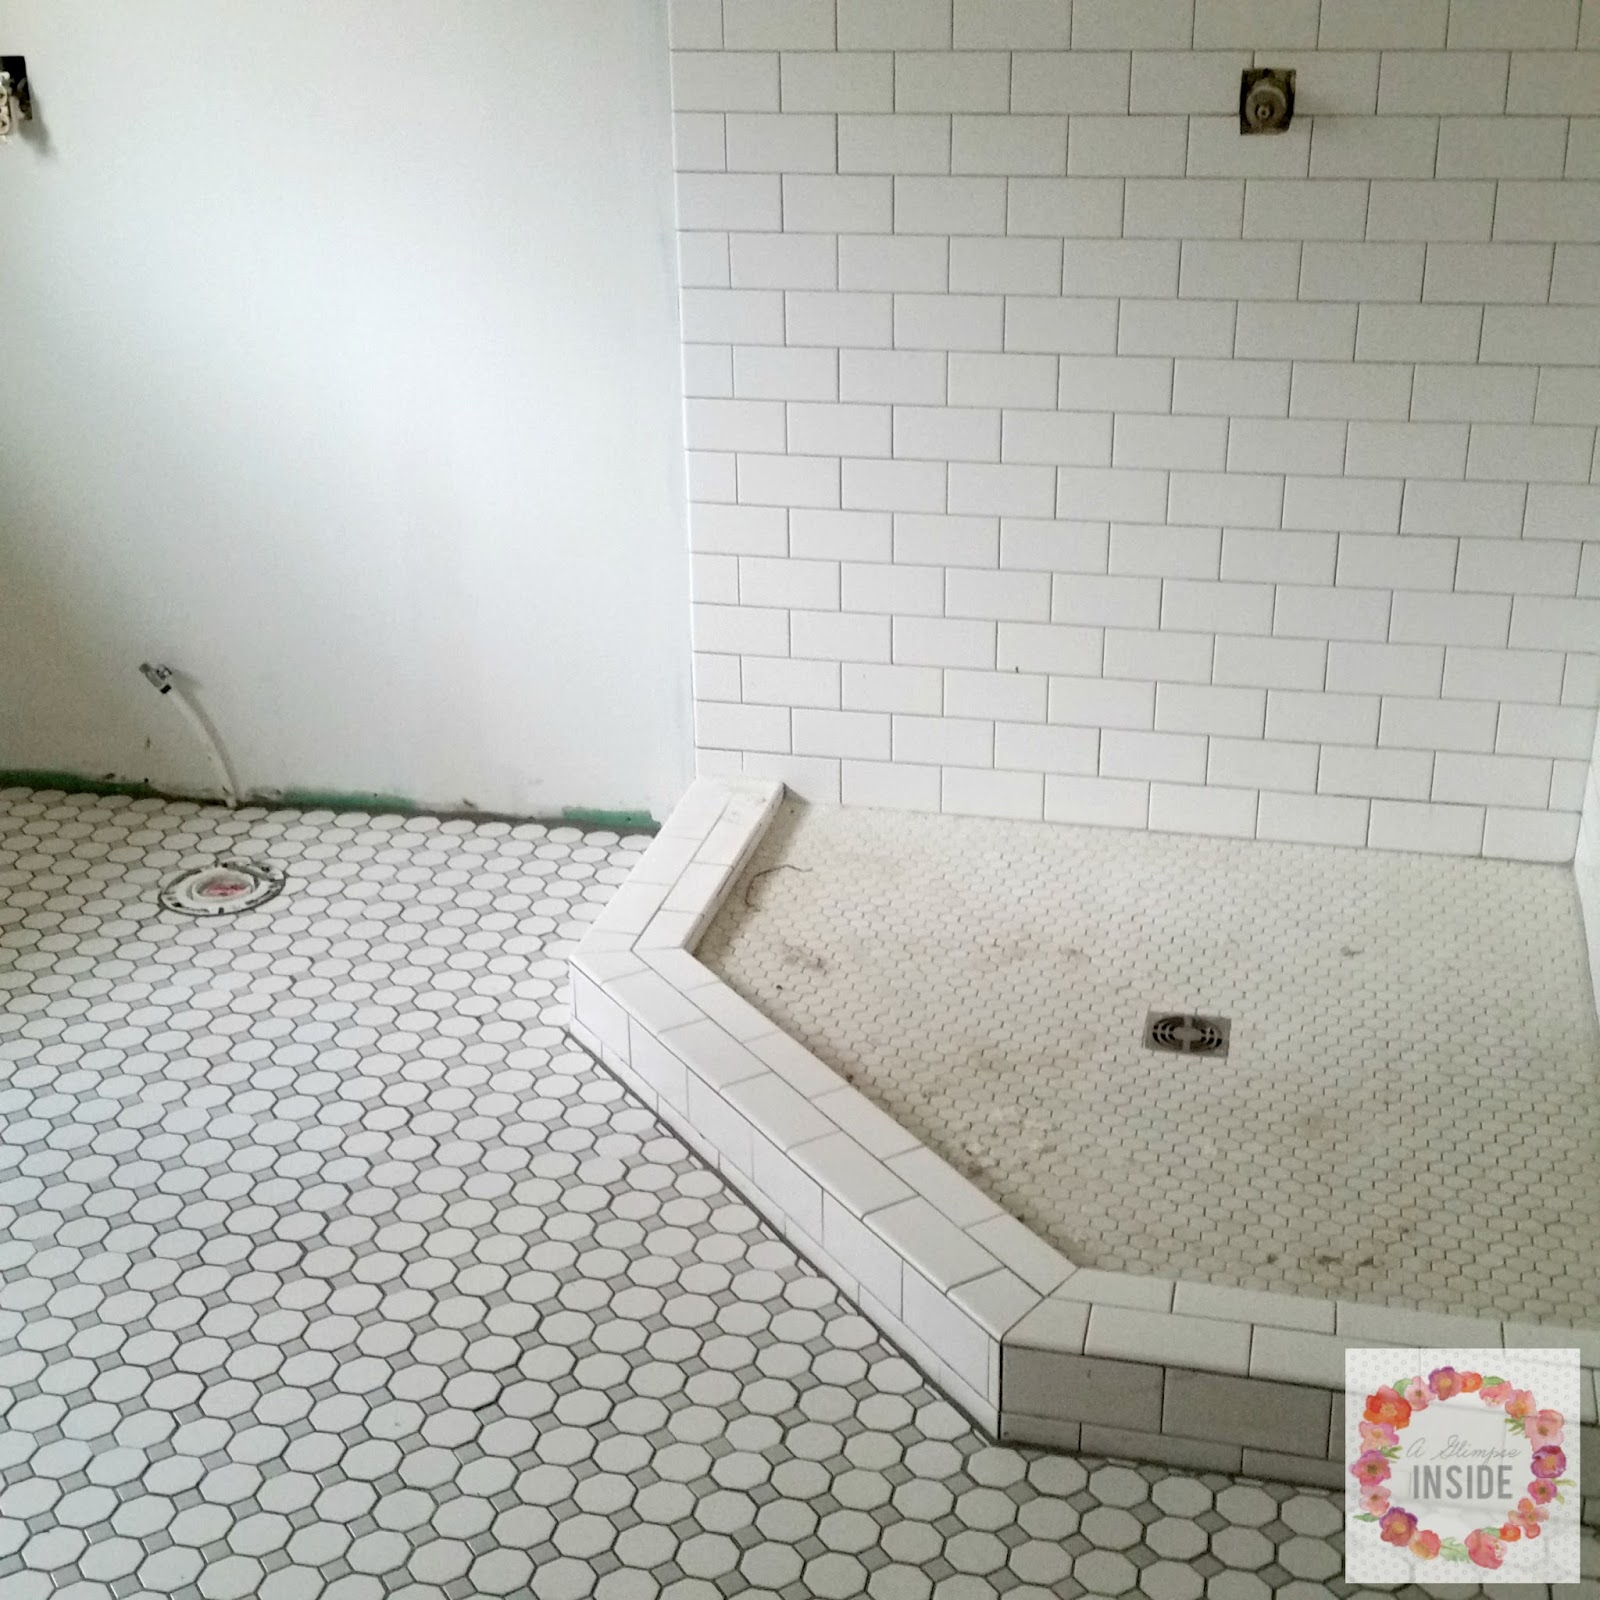 http://www.aglimpseinsideblog.com/2016/03/master-bathroom-reveal-part-2.html